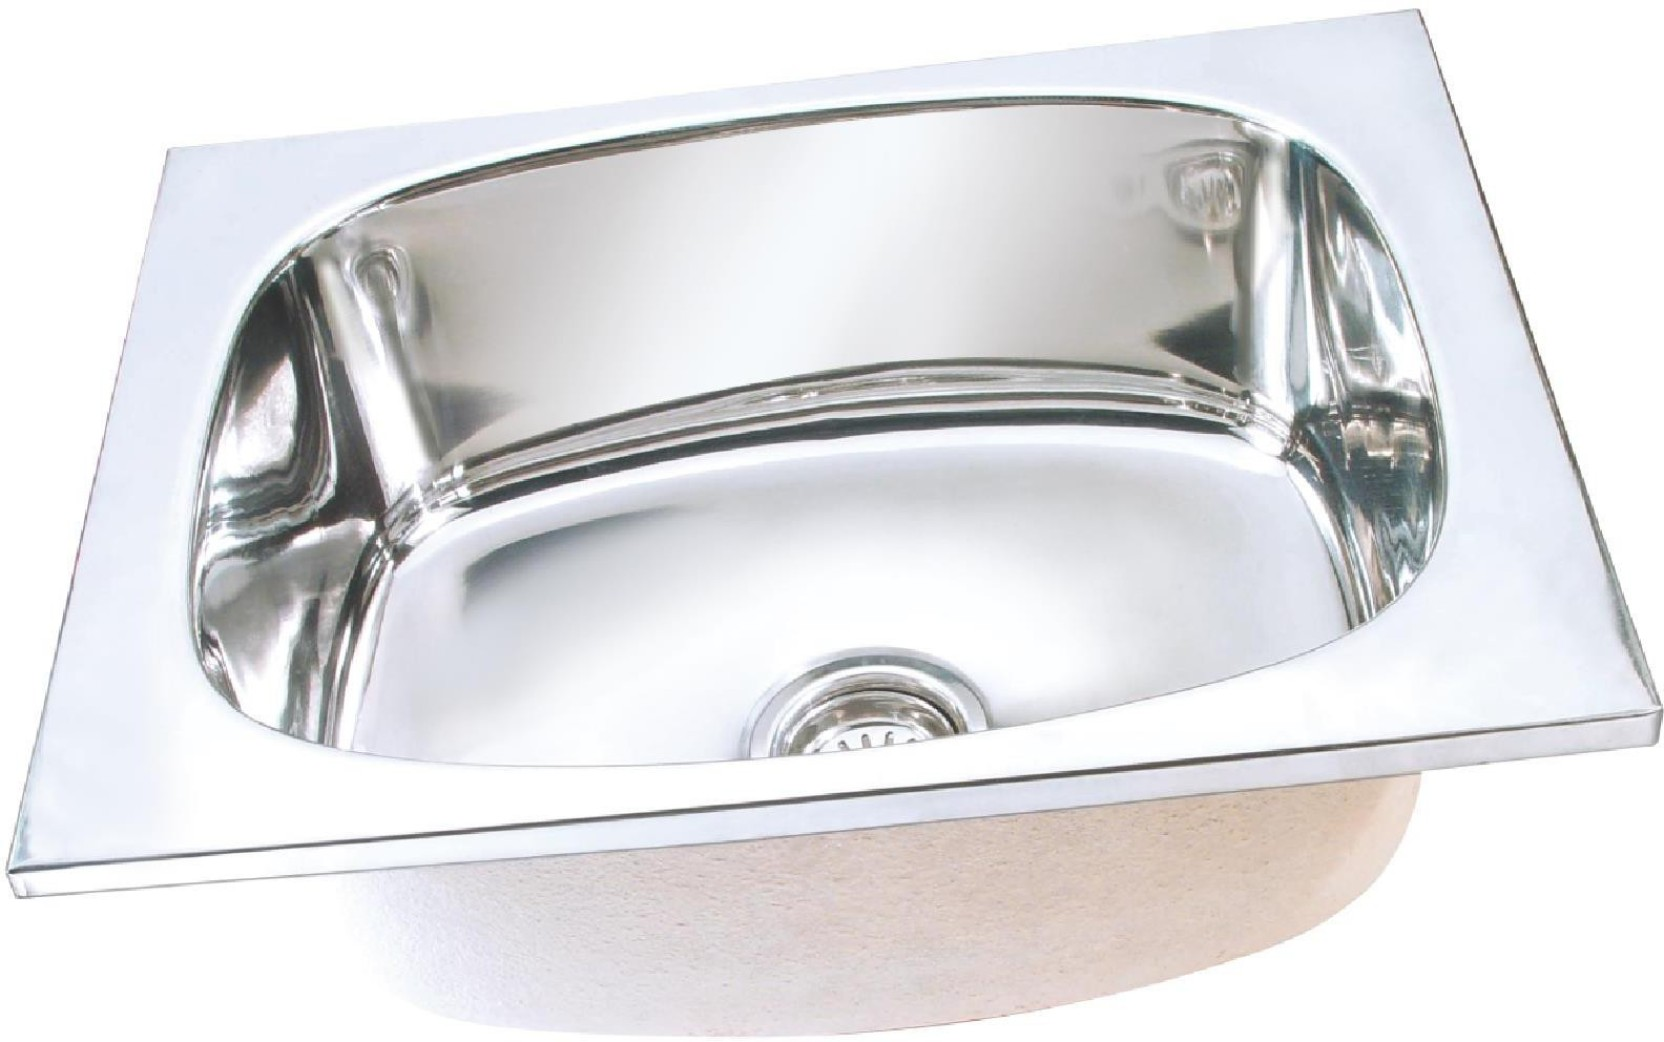 Tayal Kitchen Sink 24x18x9 Top Mount (Stainless Steel)  sc 1 st  Flipkart & Tayal Kitchen Sink 24x18x9 Top Mount Price in India - Buy Tayal ...